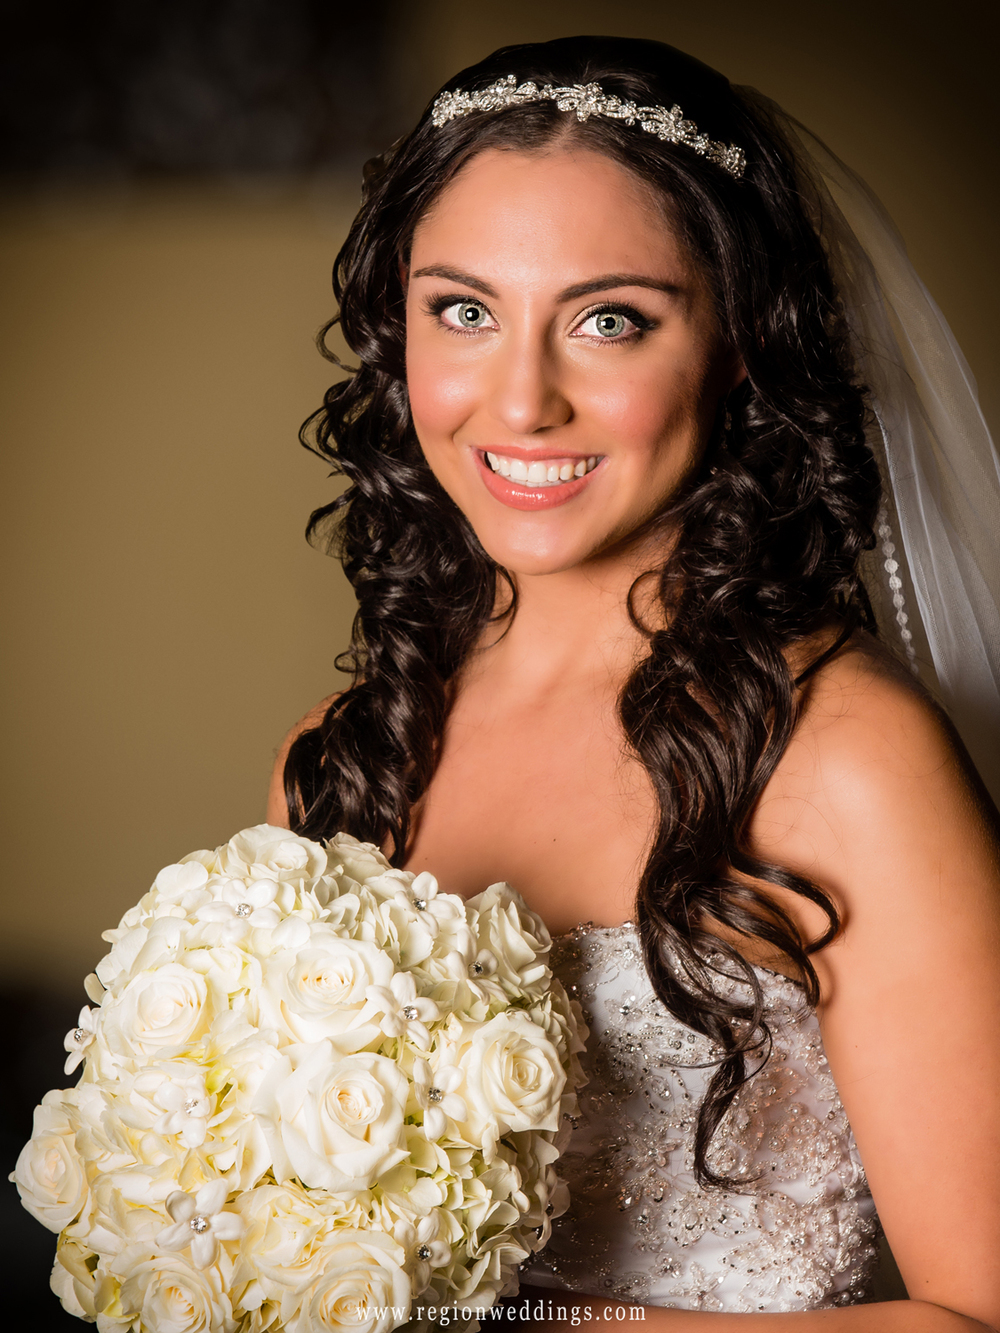 A bridal portrait of a lovely brunette bride.